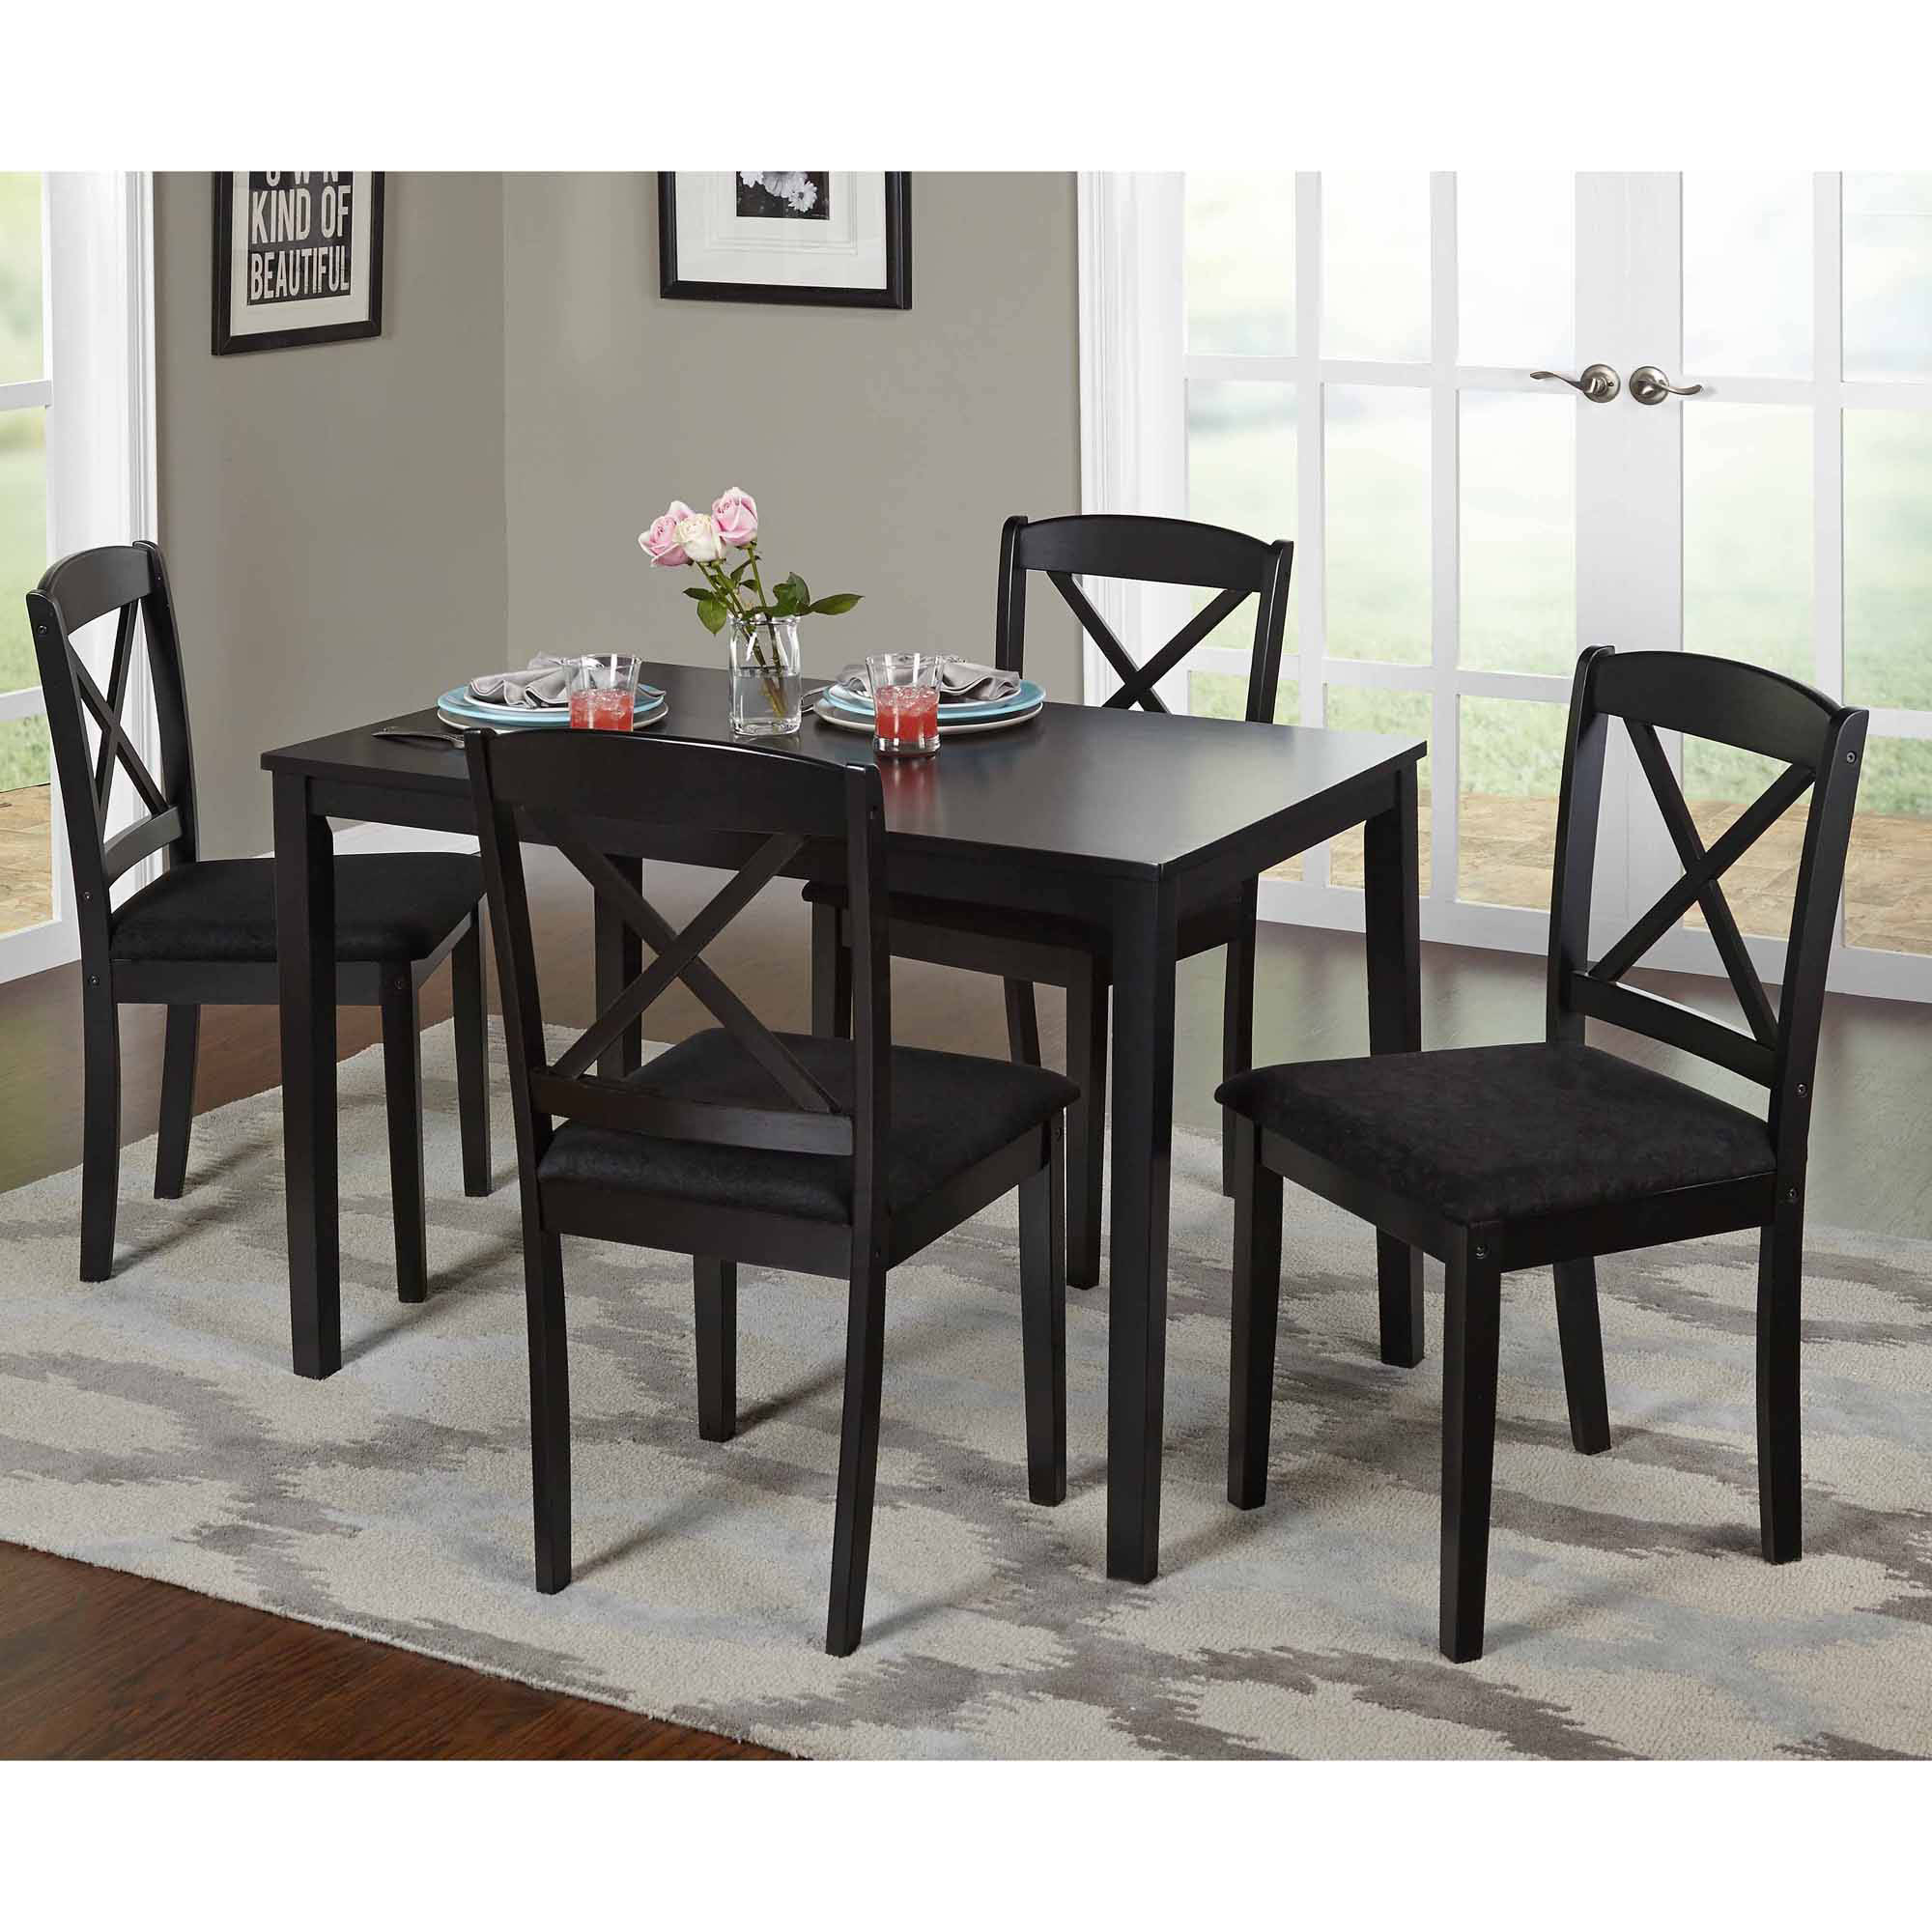 Inspiration about Trendy Tms Mason 5 Piece Cross Back Dining Set, Multiple Colors – Walmart Inside Cargo 5 Piece Dining Sets (#2 of 20)